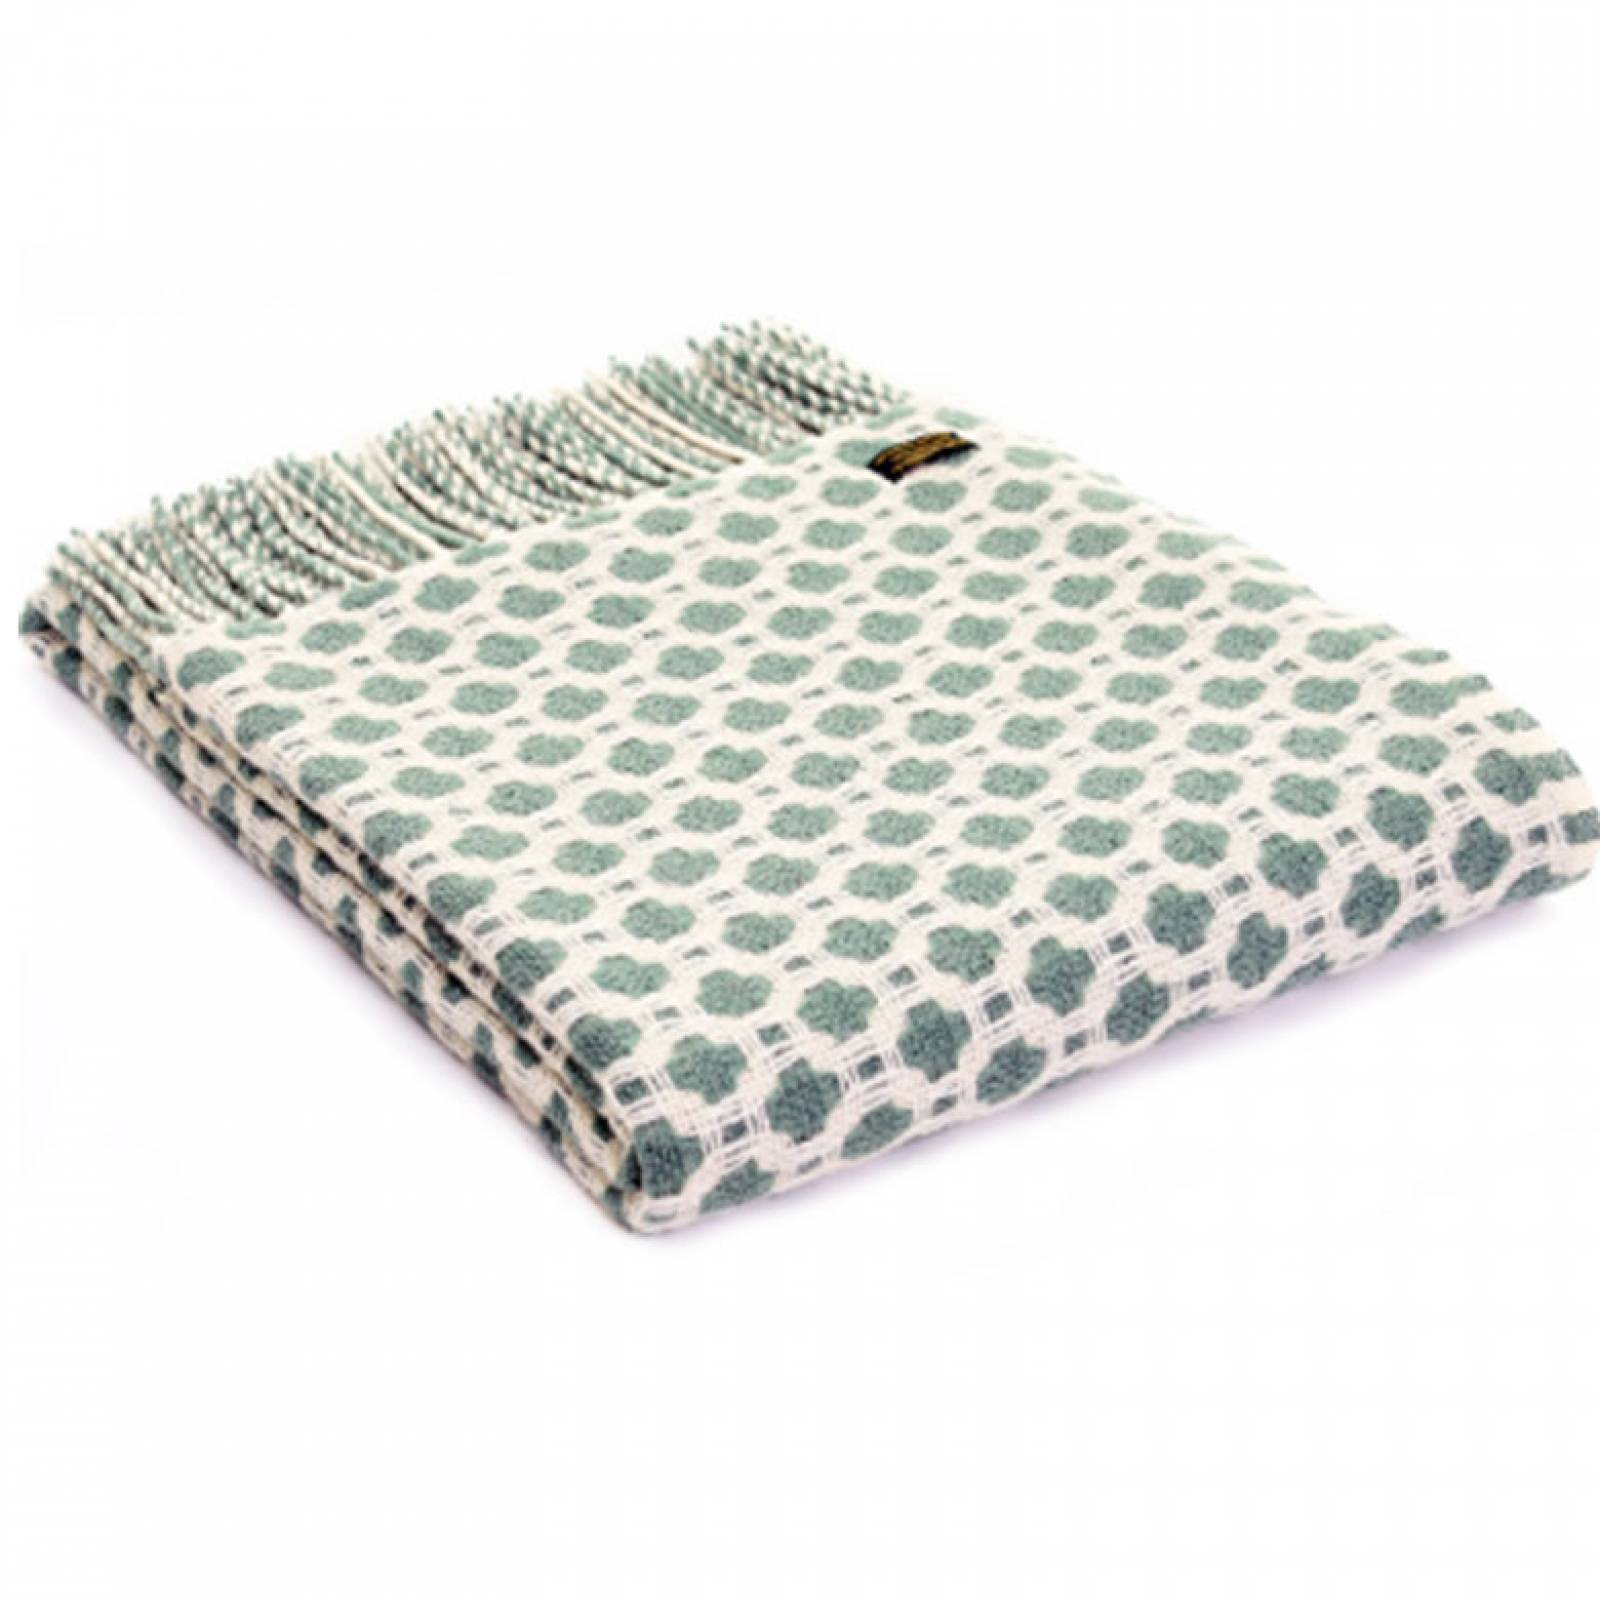 Sea Green Crossroads Throw Blanket 150x183cm thumbnails